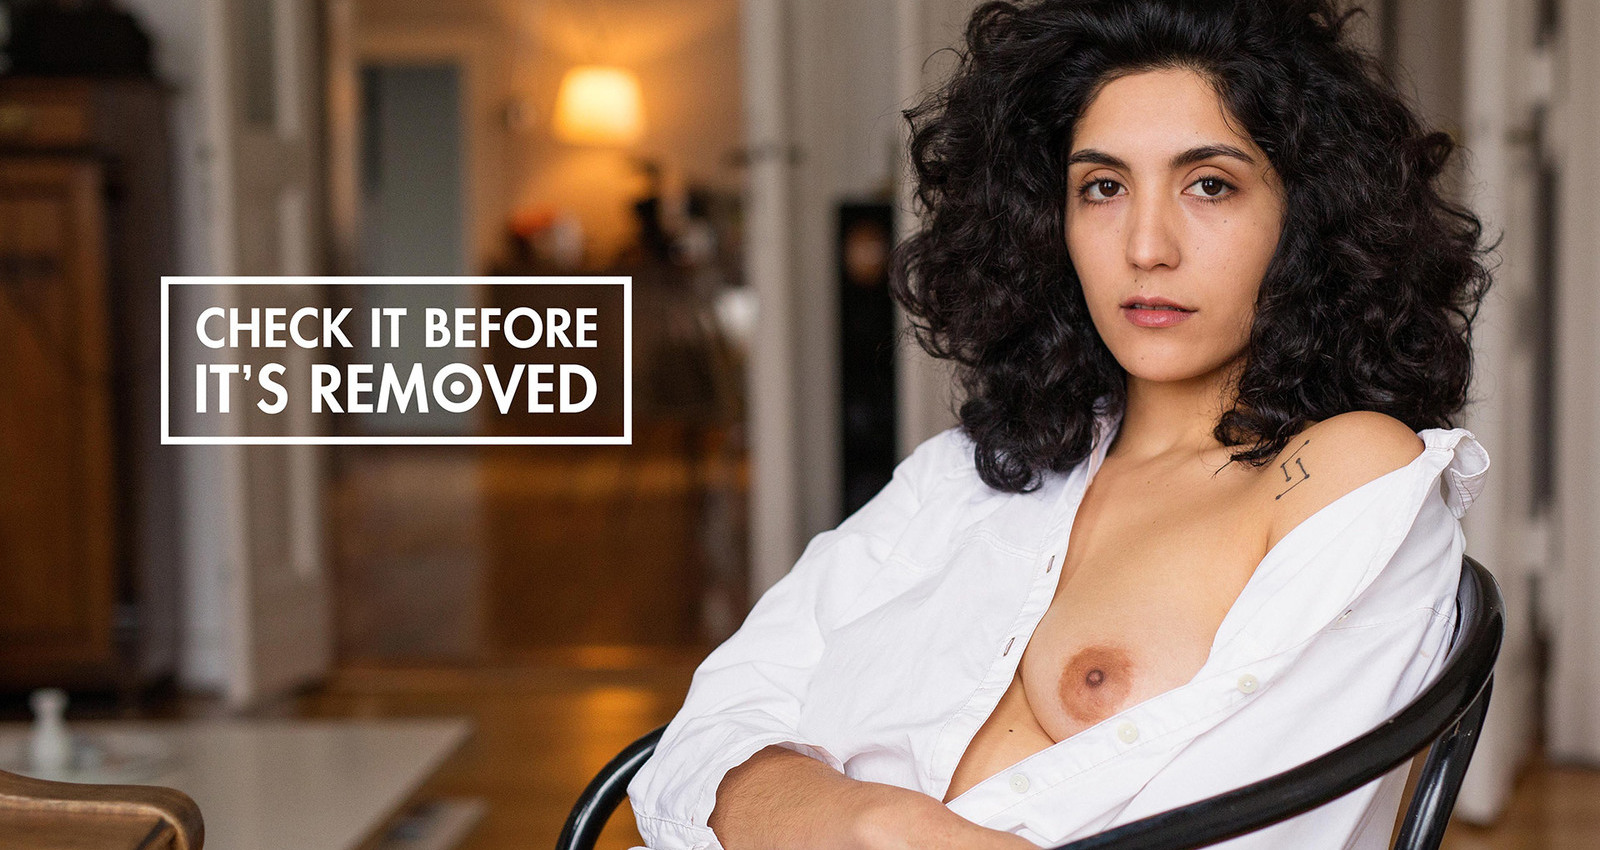 Check it before it's removed: naked breasts on Facebook against breast cancer.